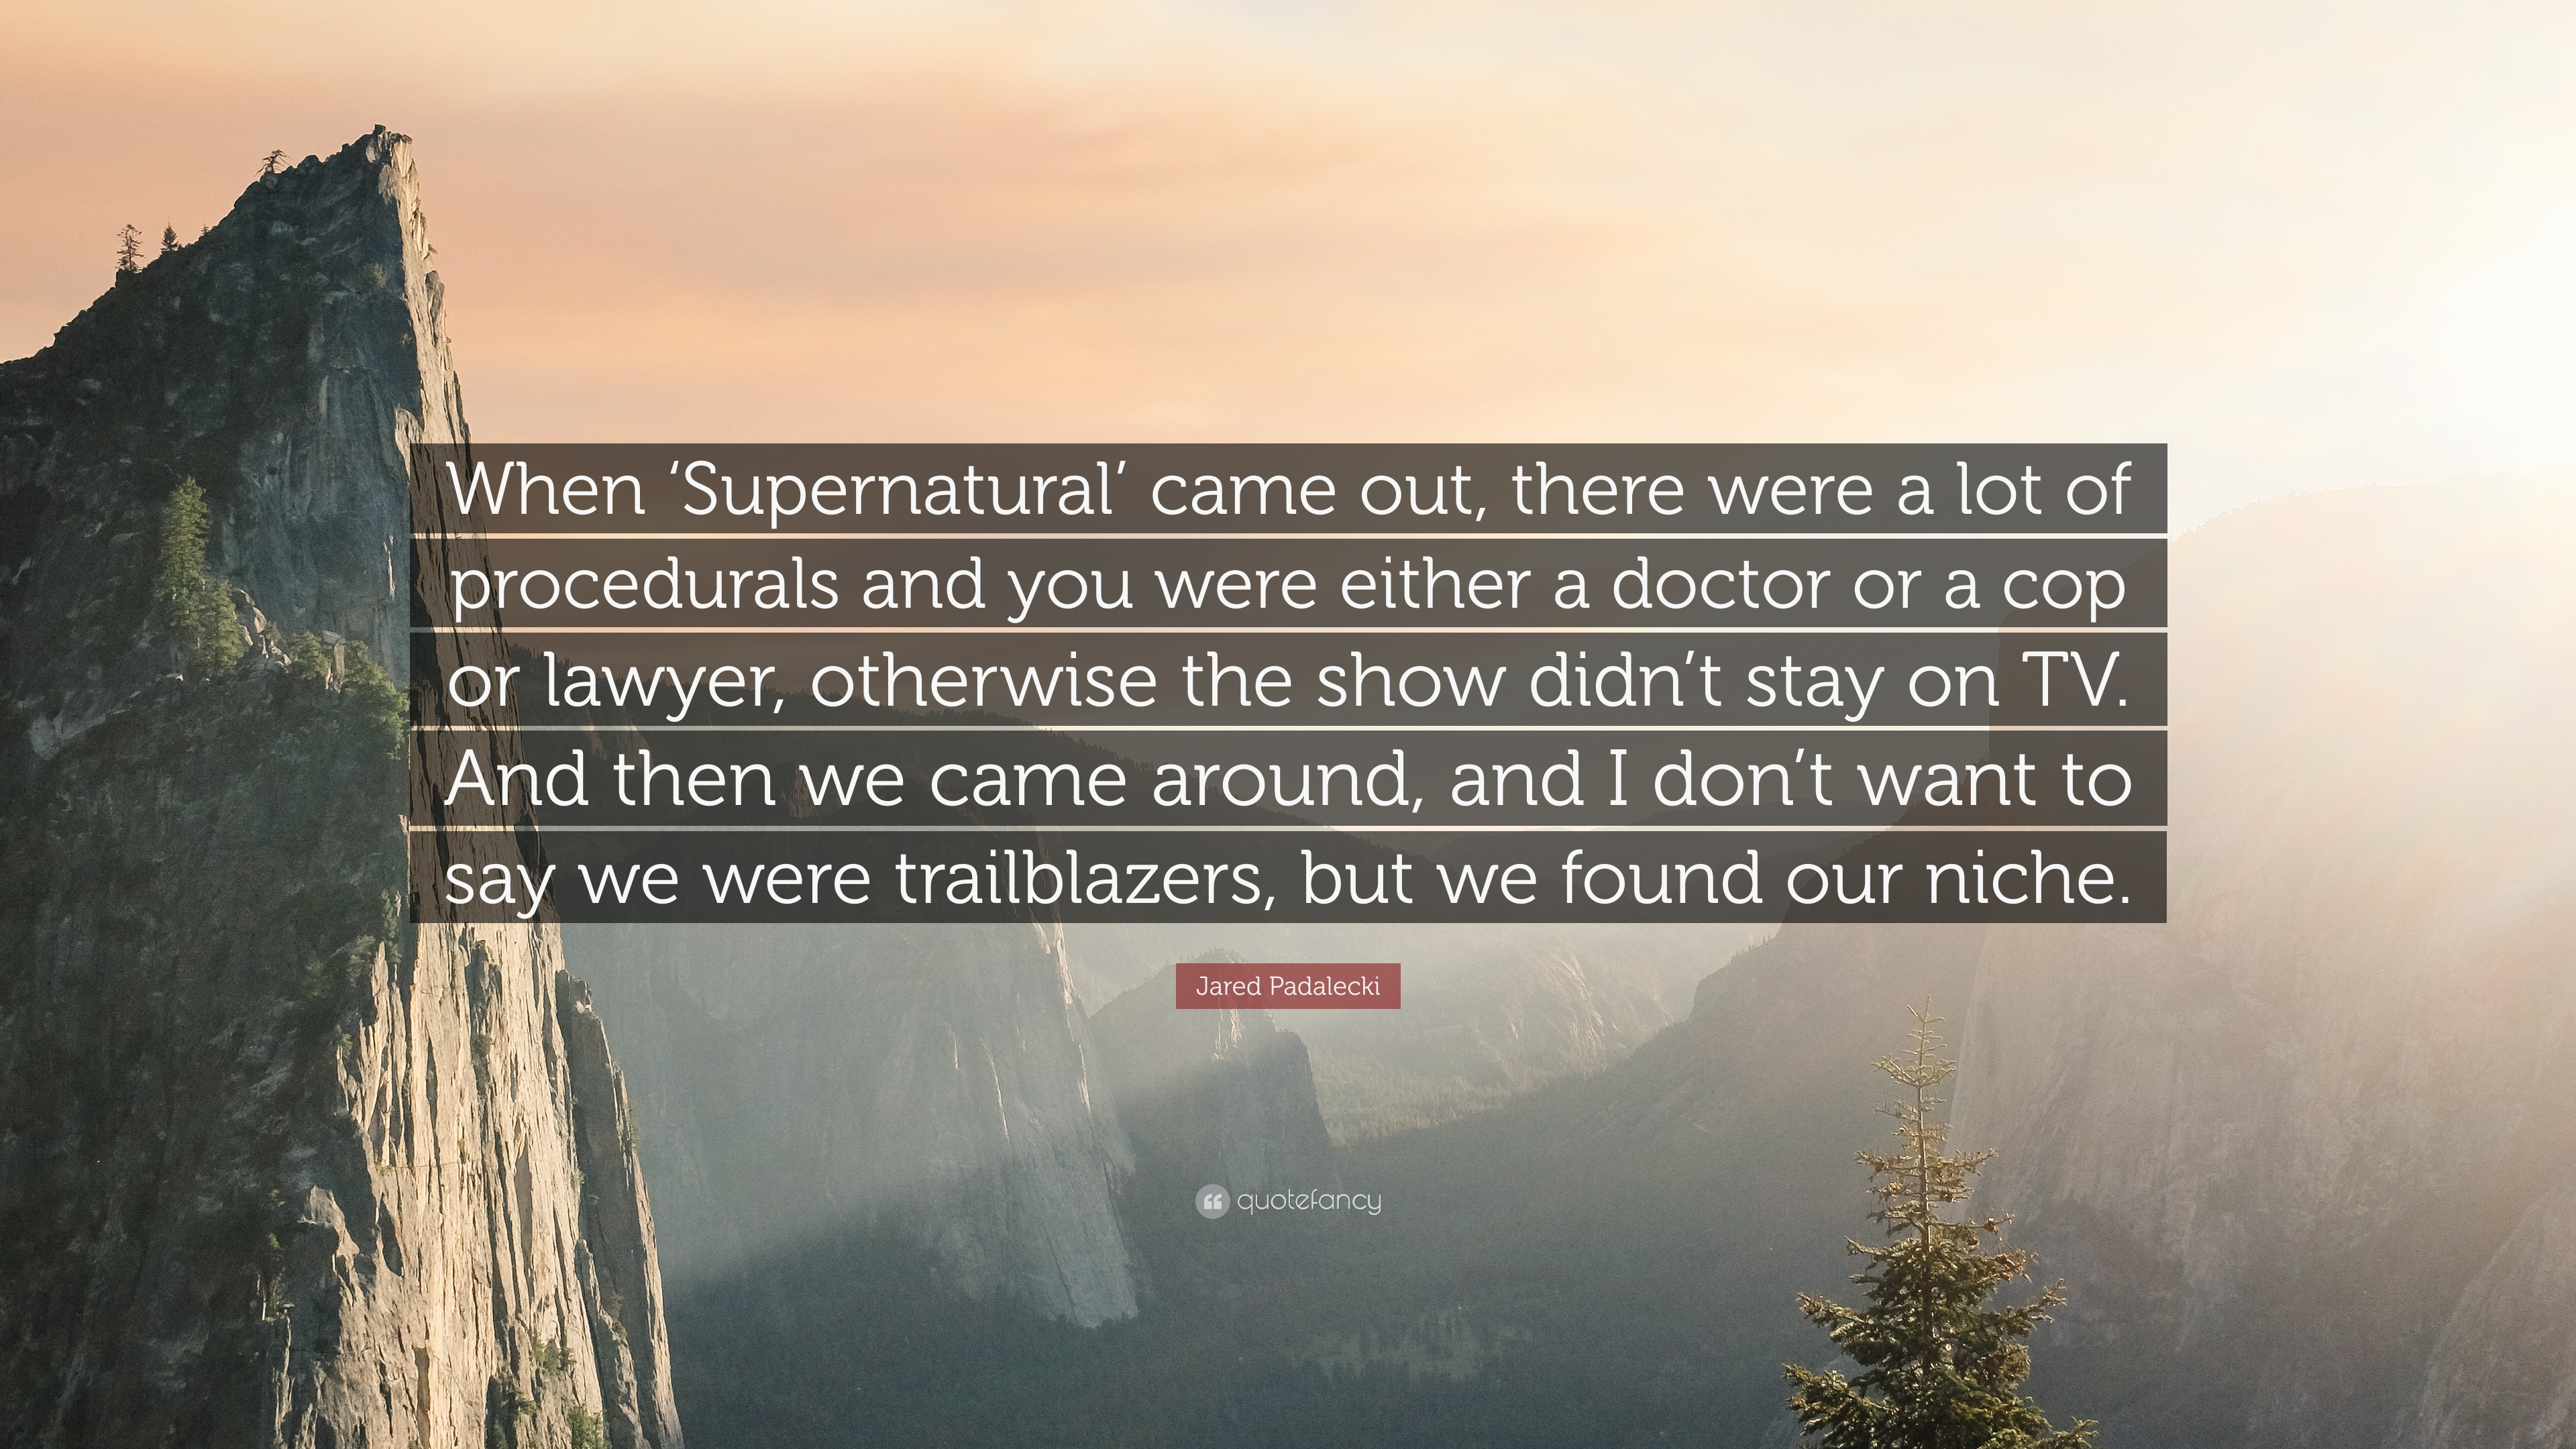 Jared padalecki quotes - Jared Padalecki Quote When Supernatural Came Out There Were A Lot